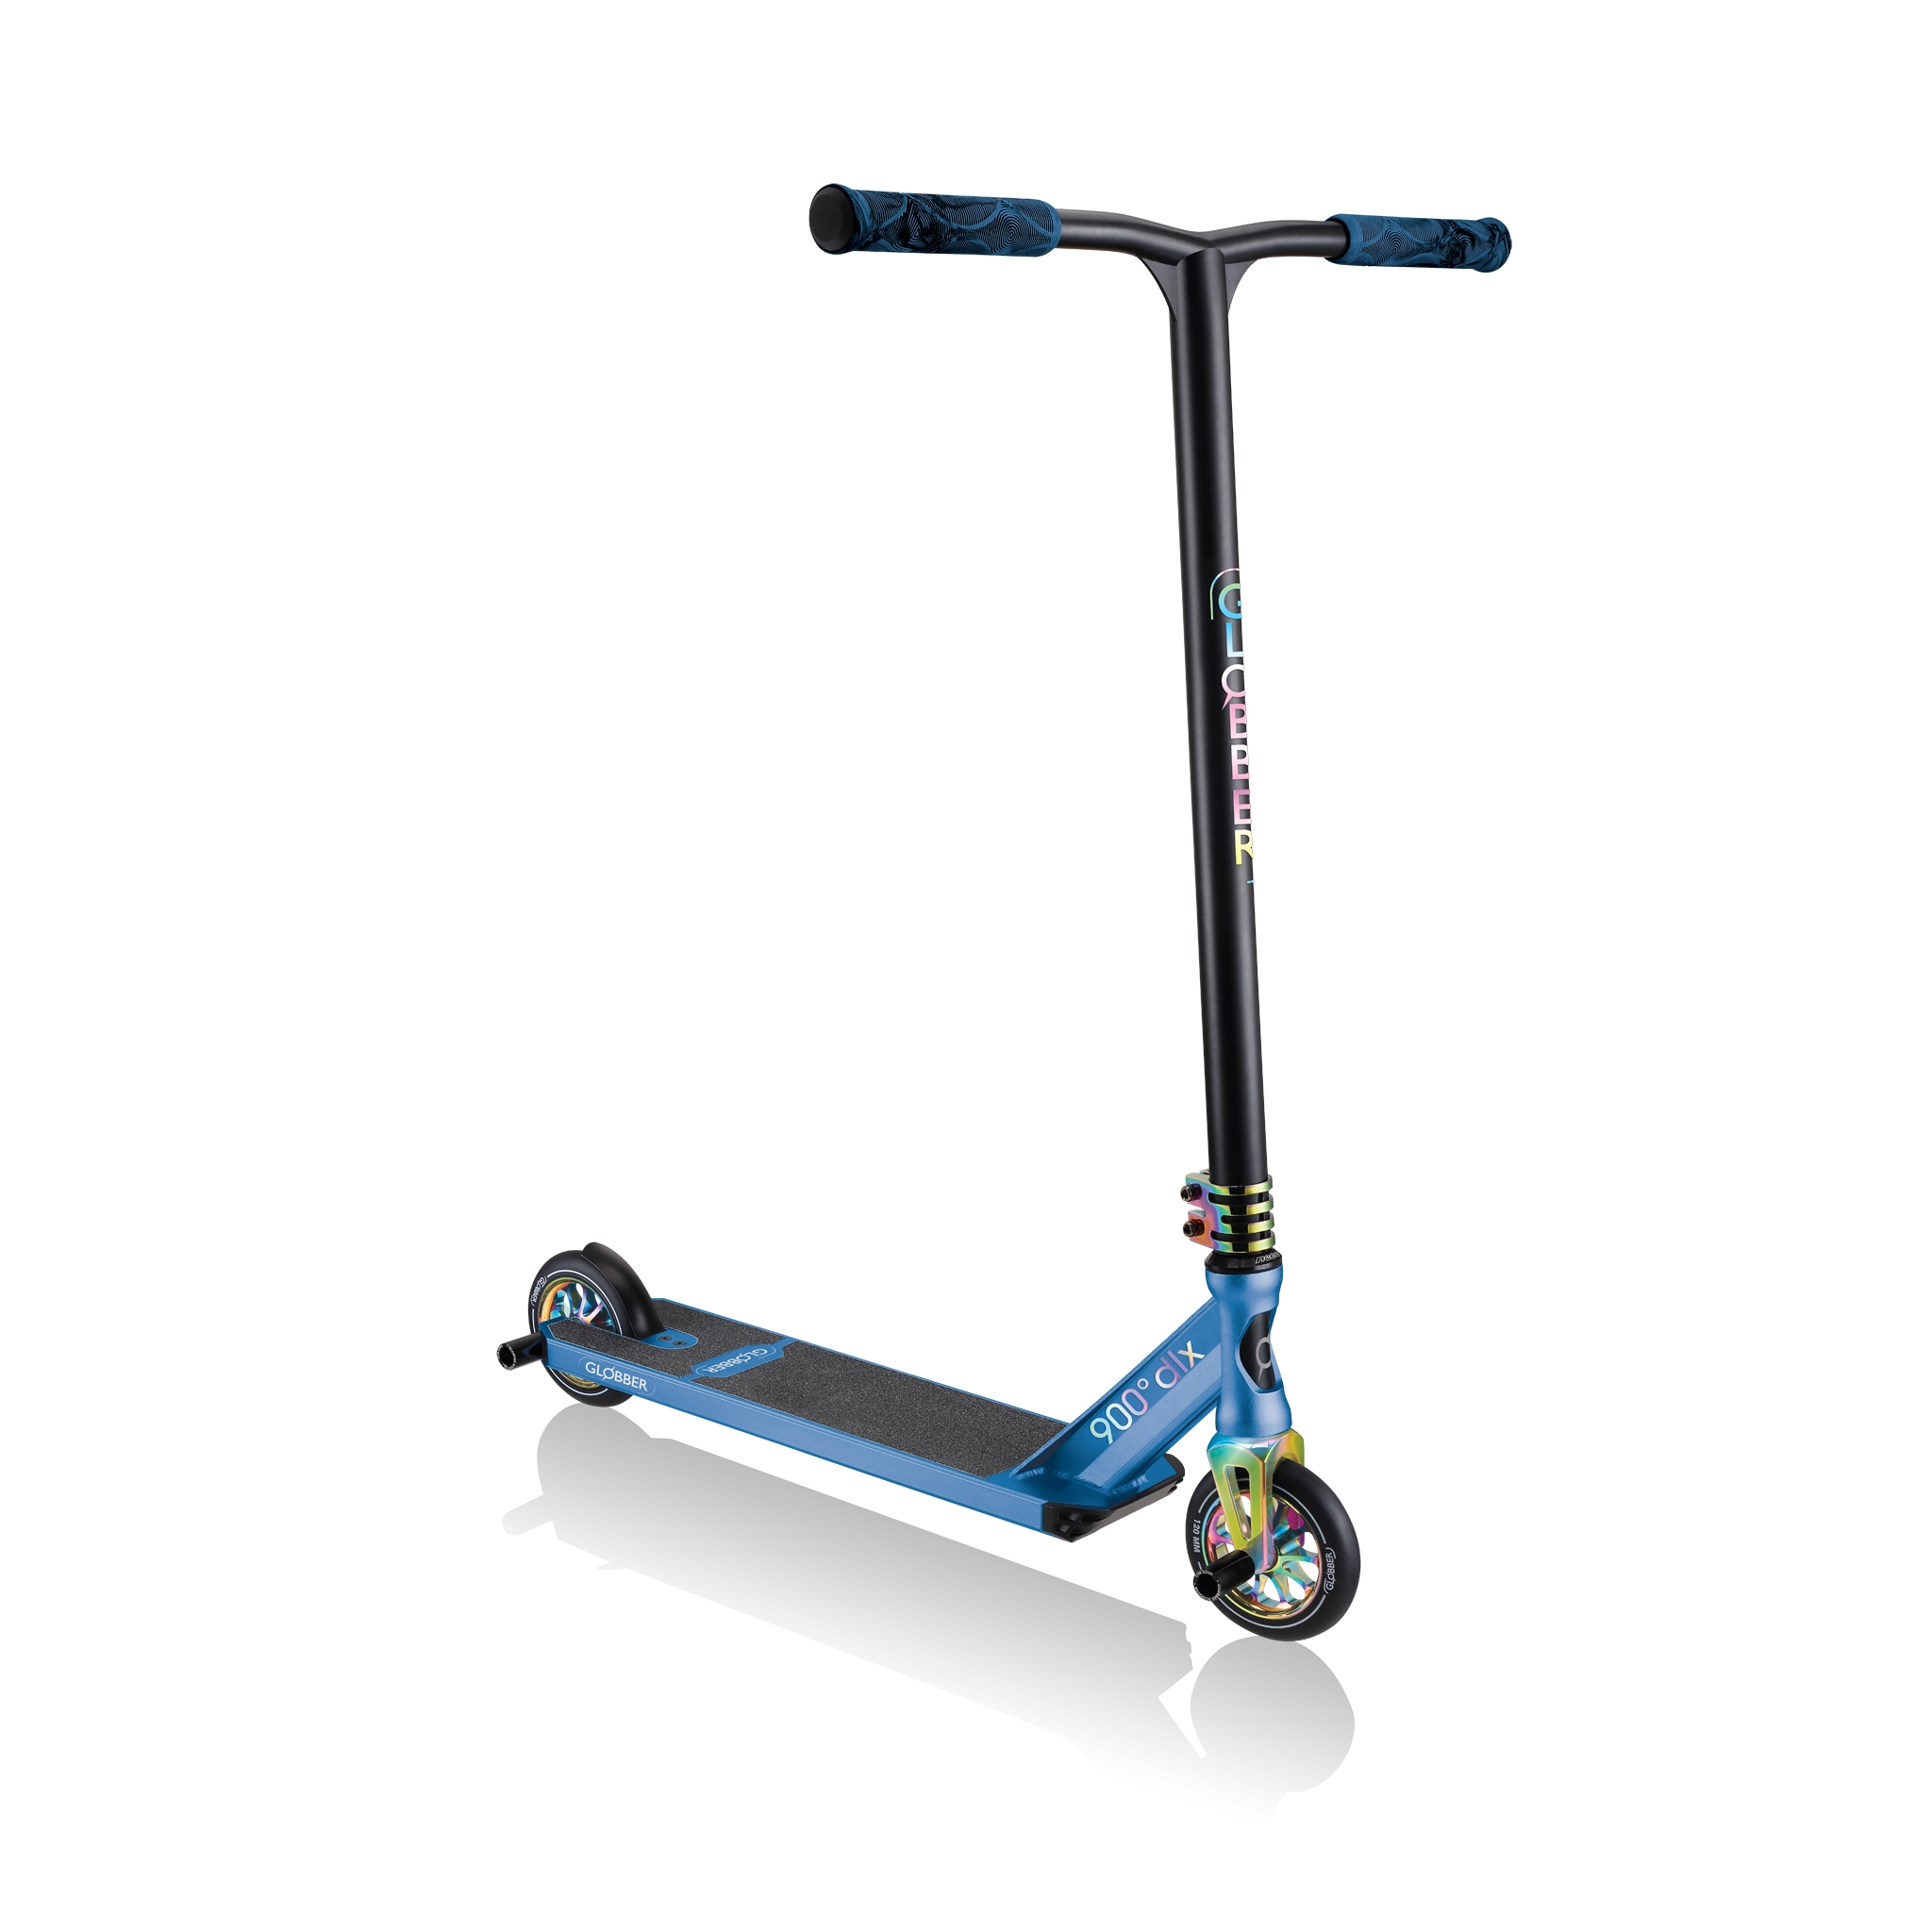 pro-chrome-stunt-scooter-Globber-GS-900-DELUXE 0